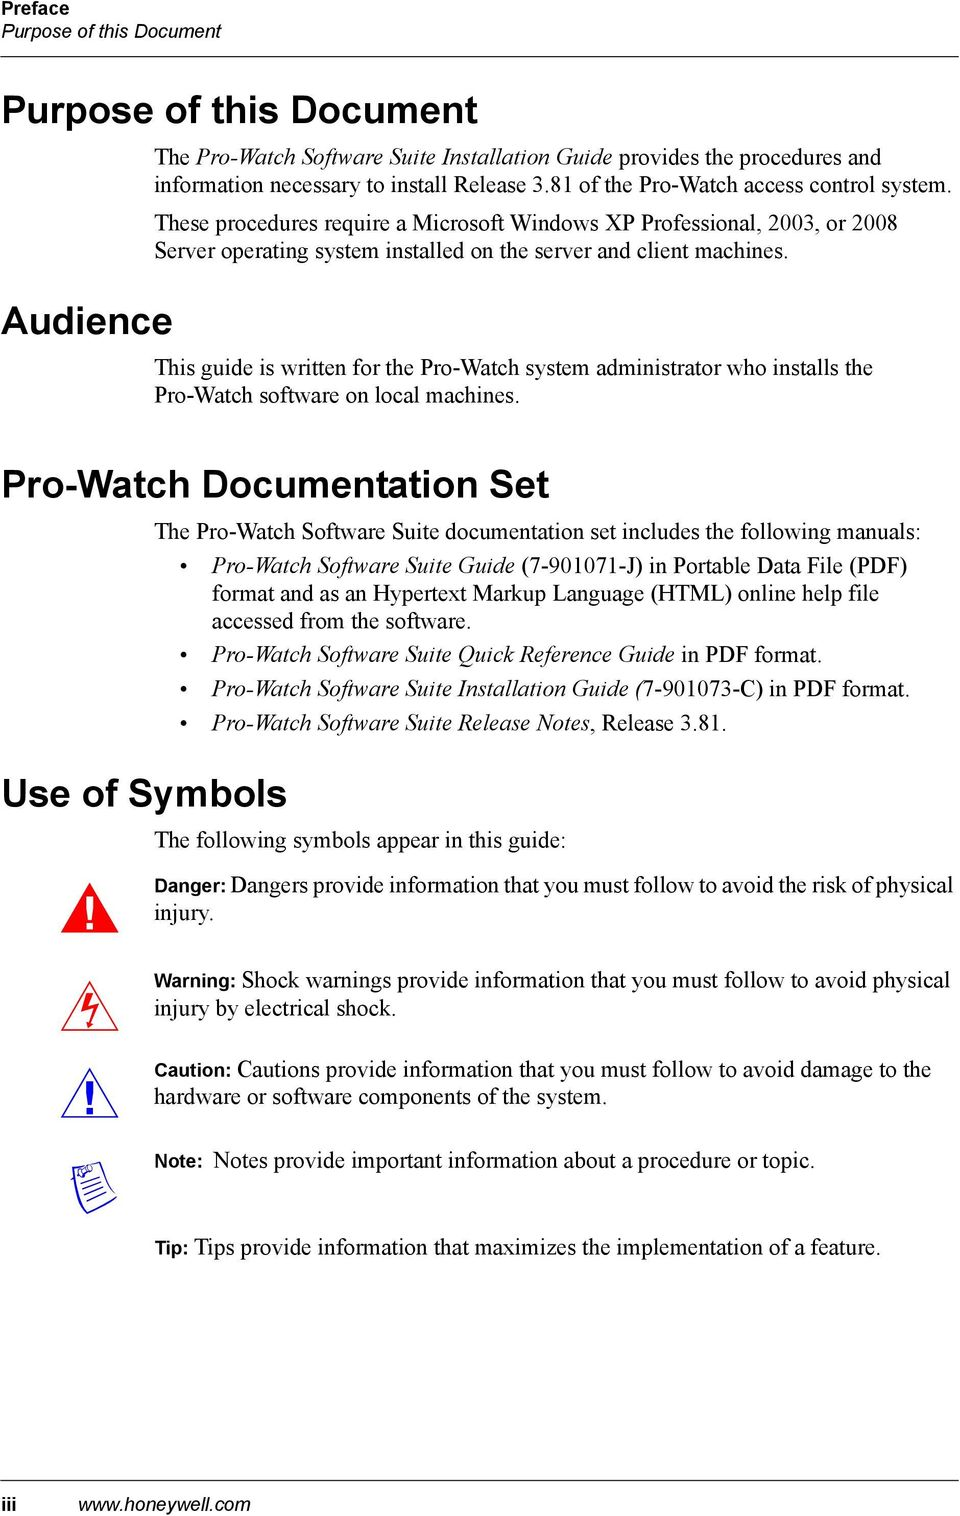 This guide is written for the Pro-Watch system administrator who installs the Pro-Watch software on local machines.